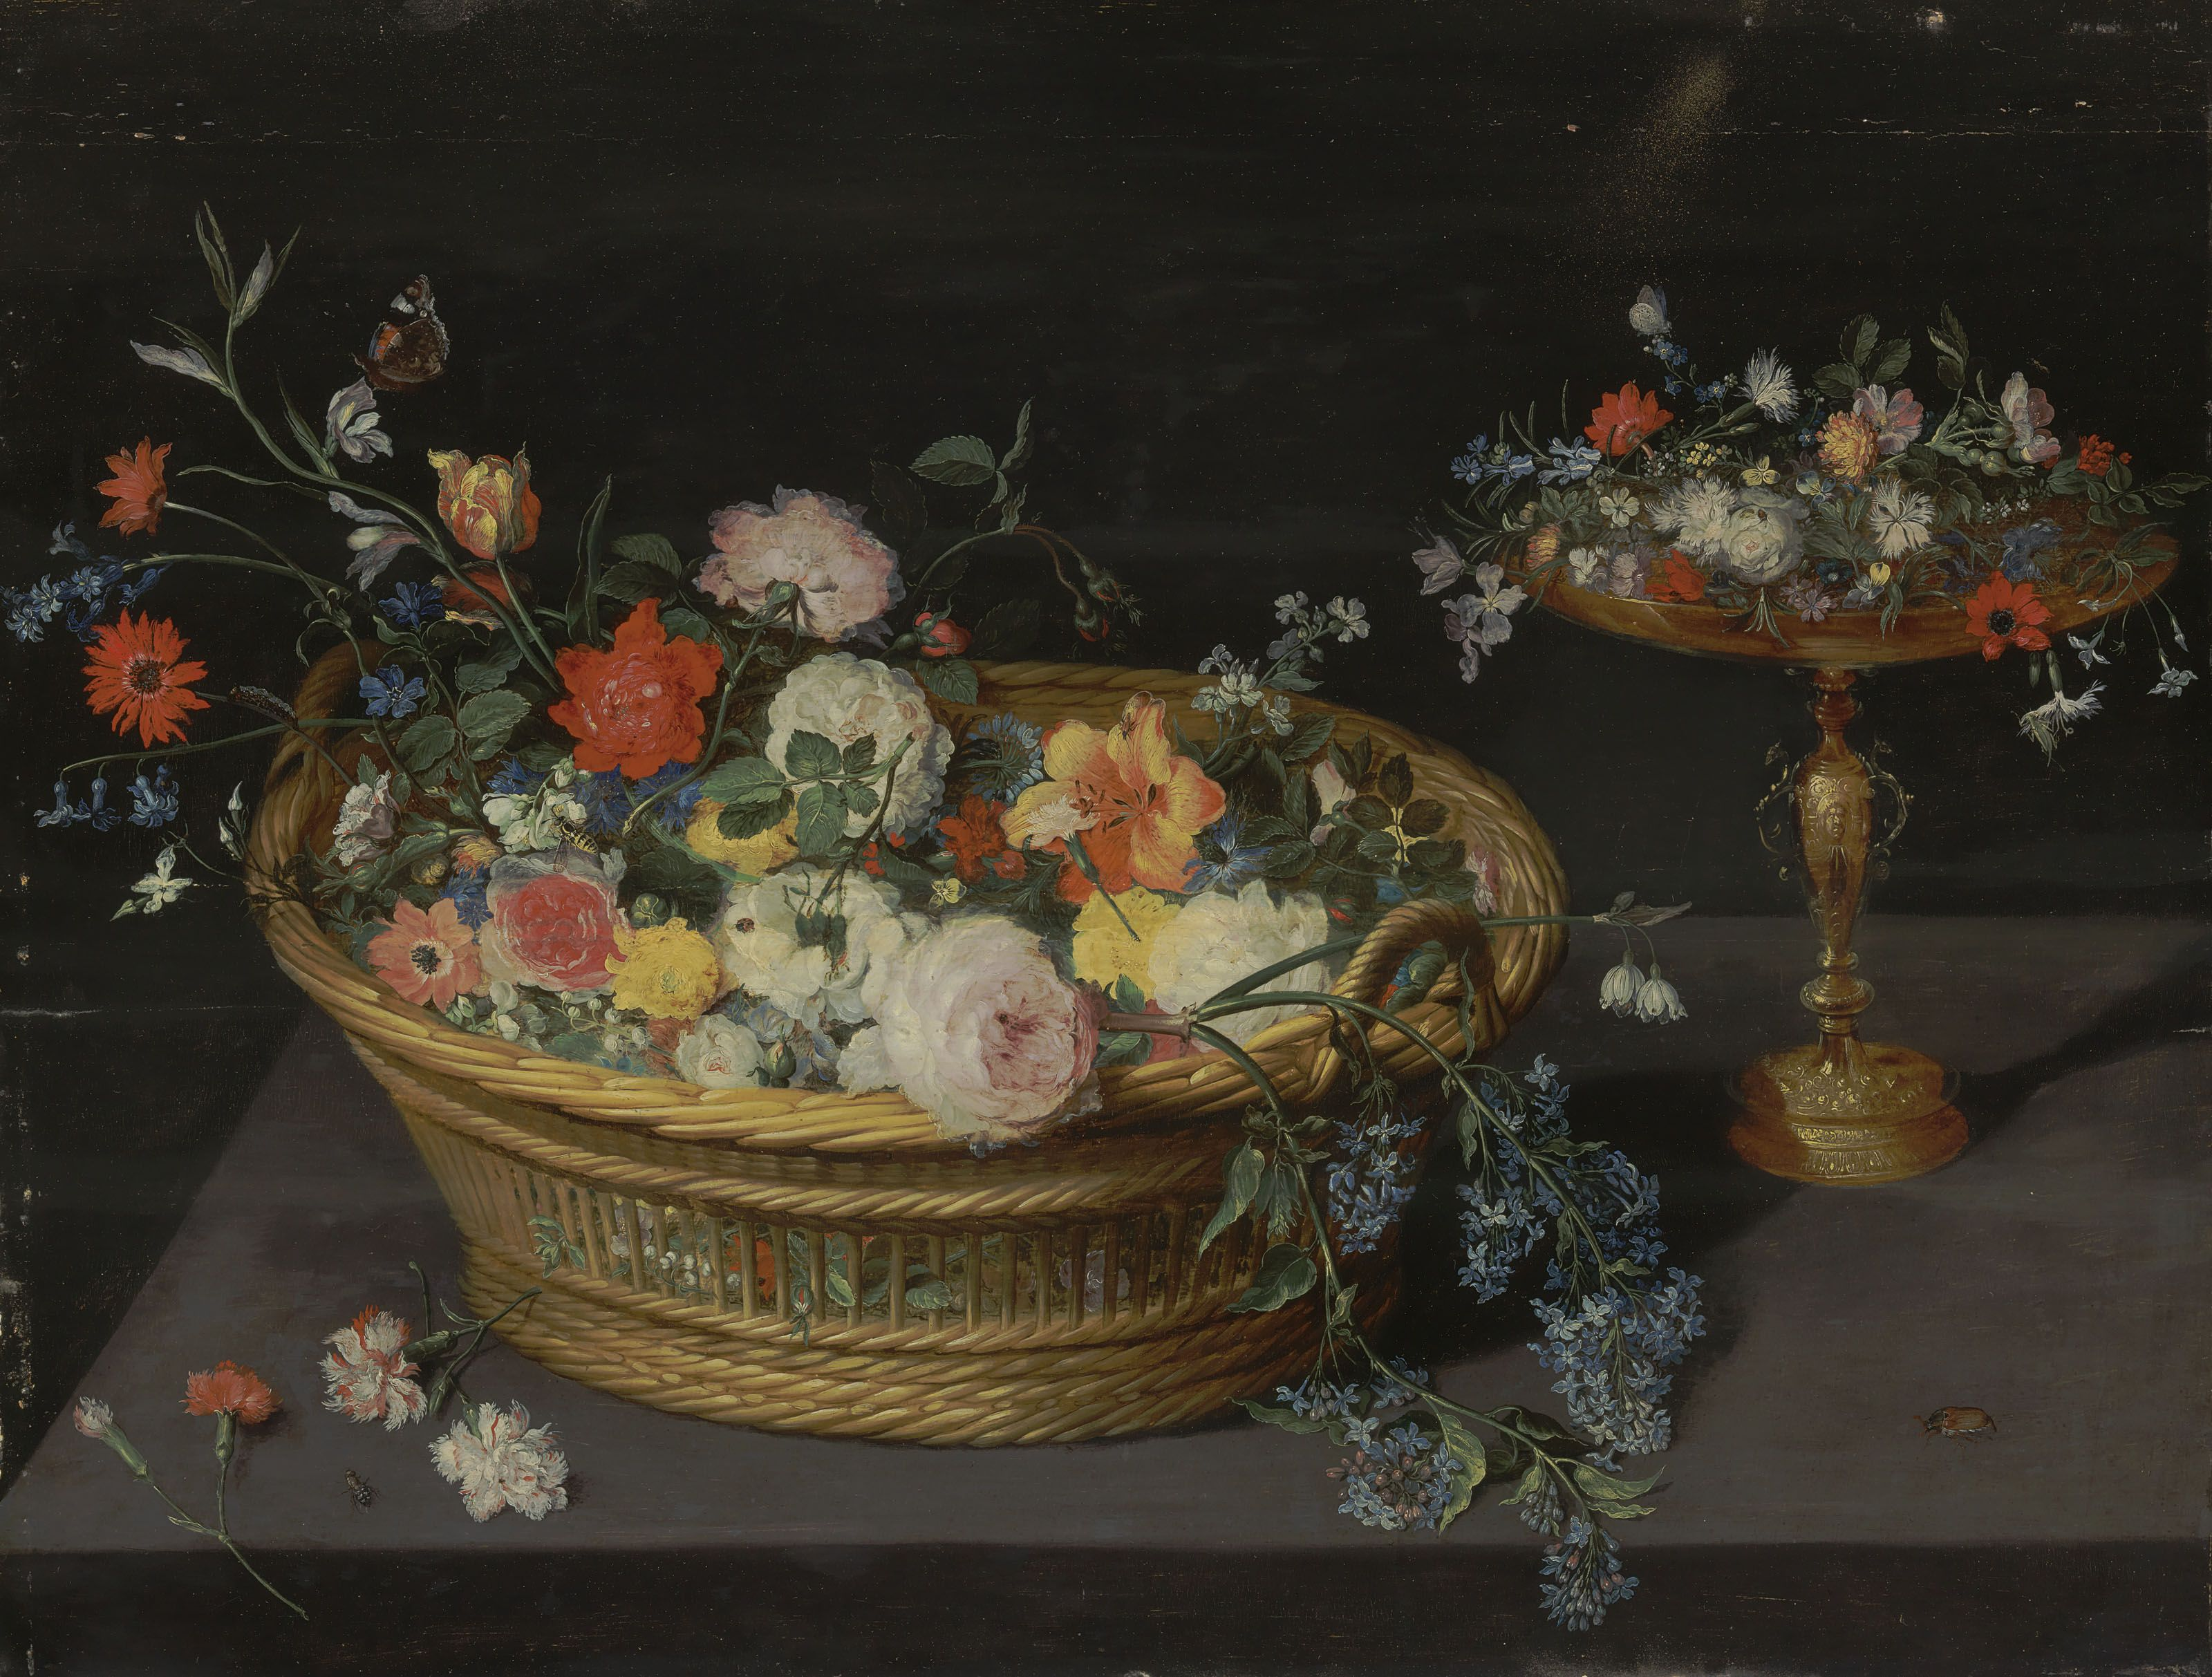 Jan Breughel Ii Antwerp 1601 1678 A Wicker Basket Of Roses Peonies Tulips And Other Flowers With A Silver Gilt Tazz Painting Museum Of Fine Arts Old Master